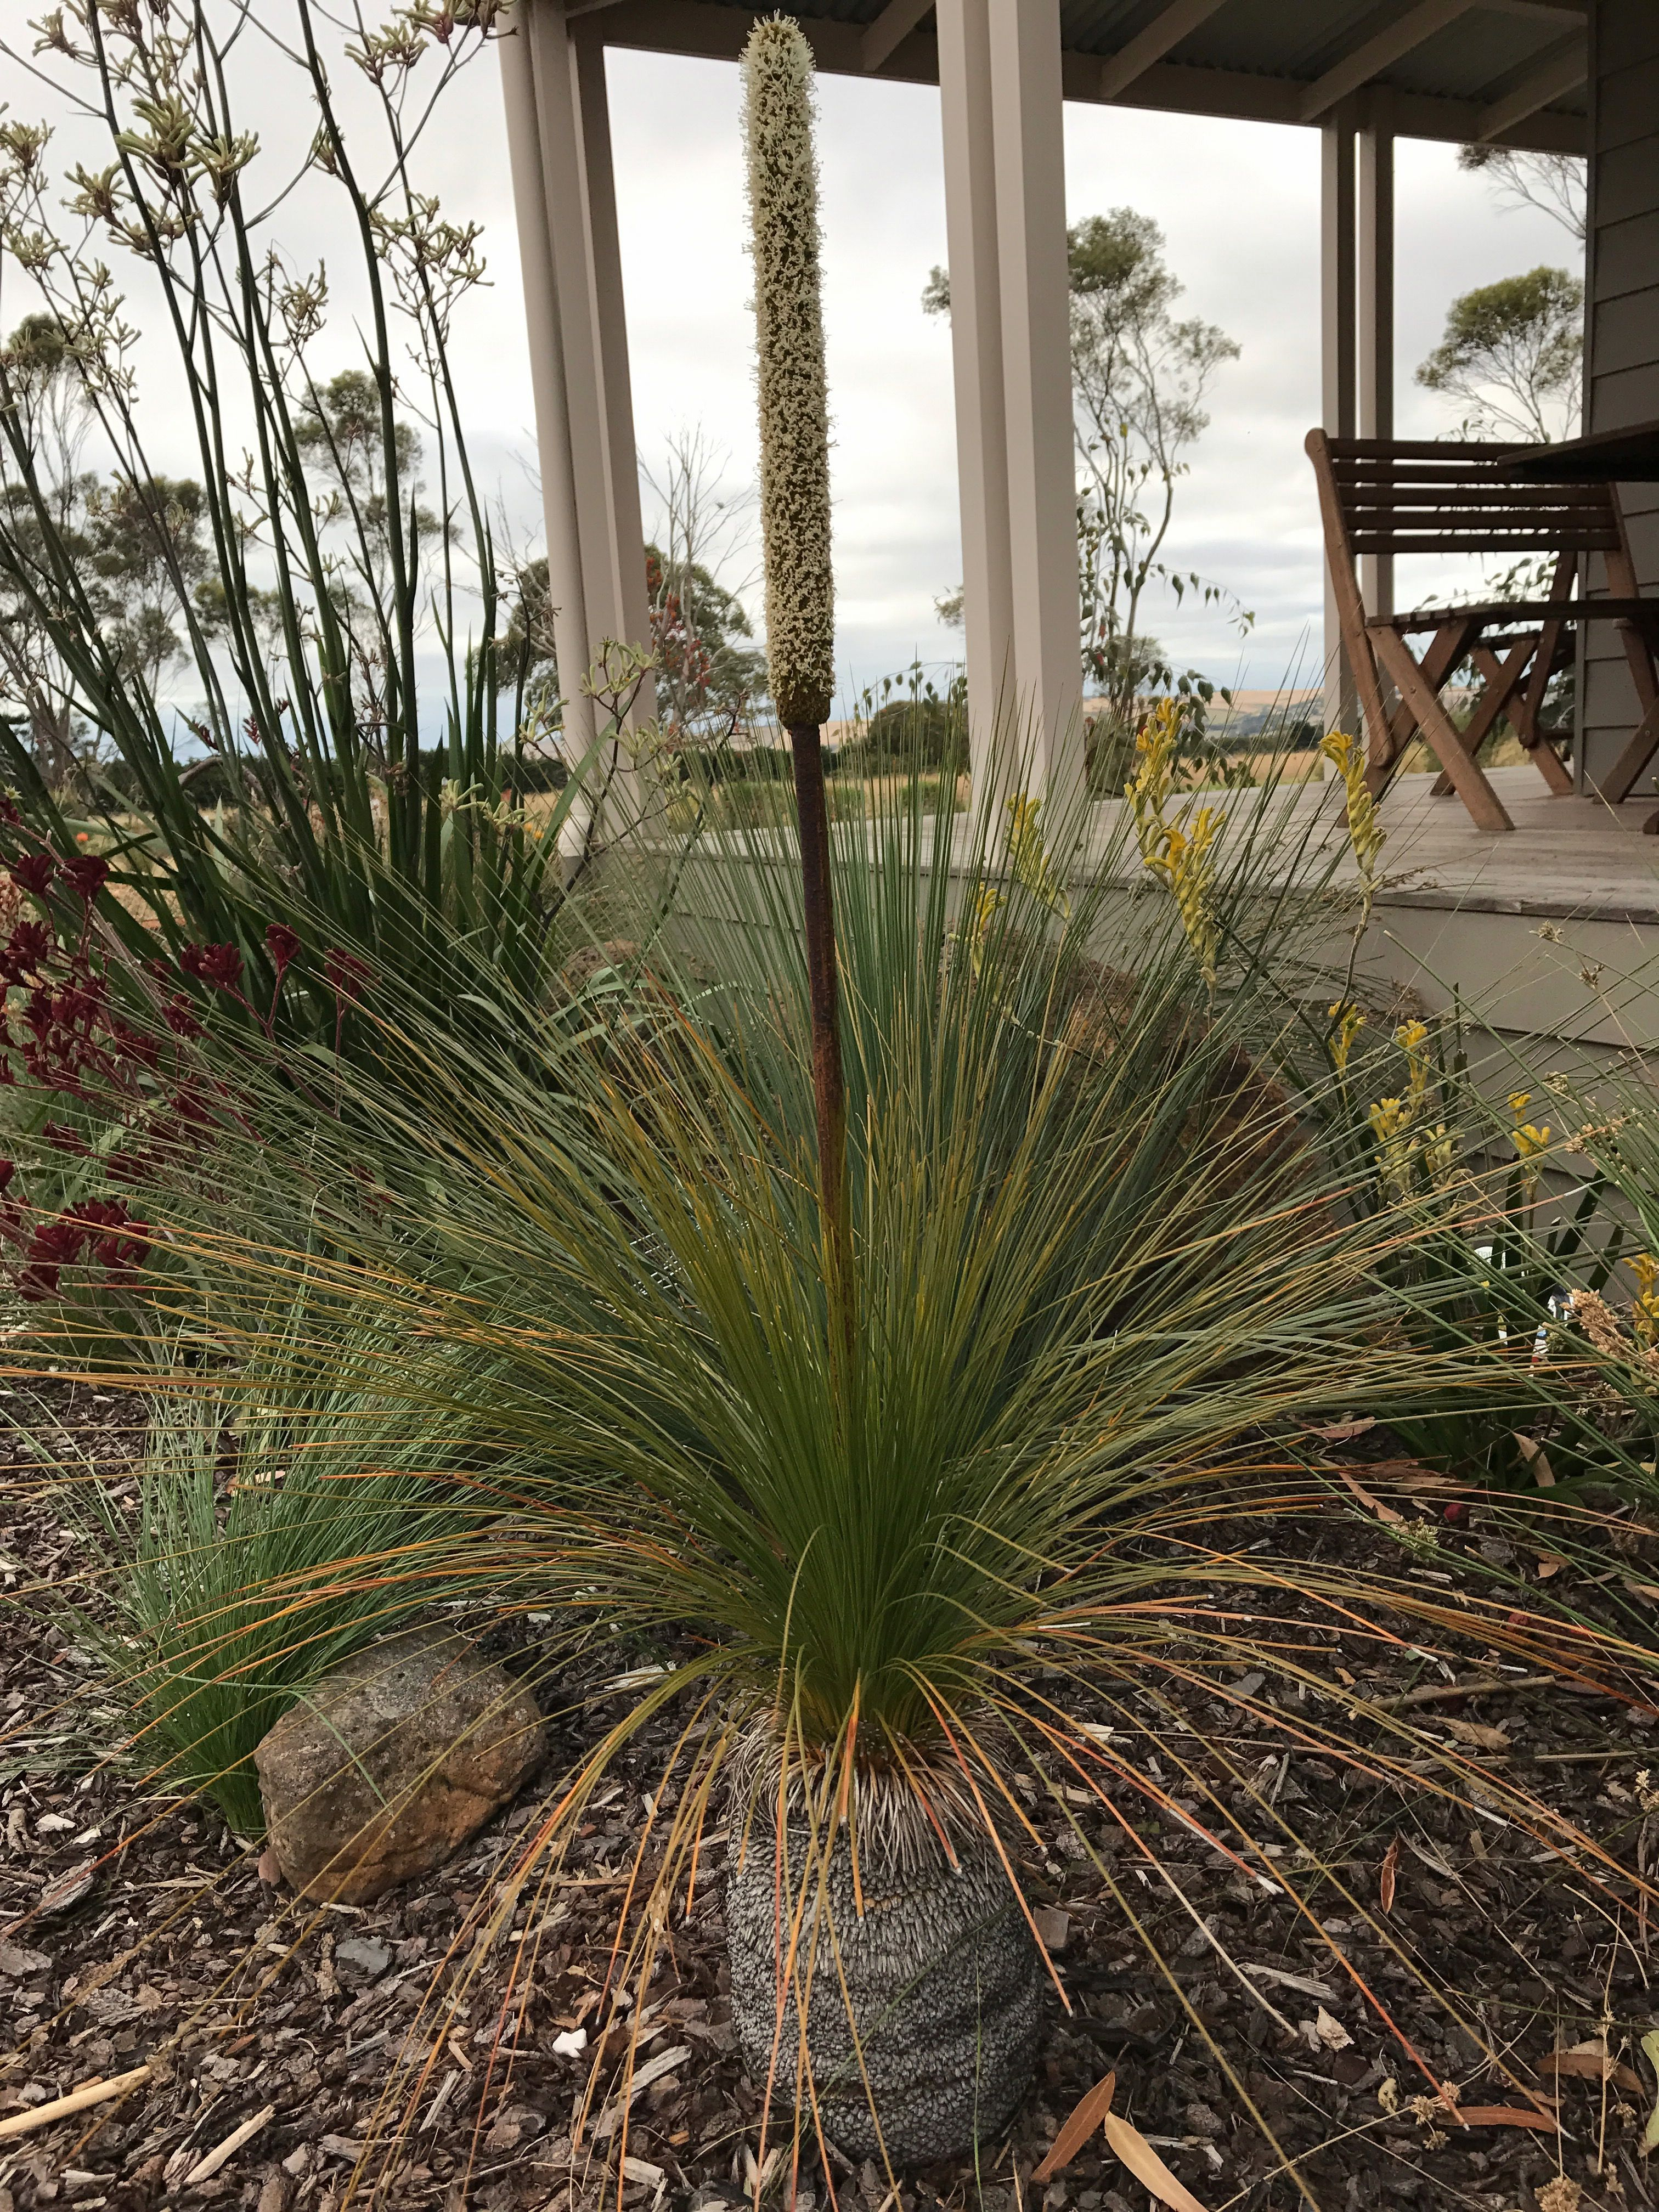 Grass Tree (Xanthorrhoea Australis) with flower spike